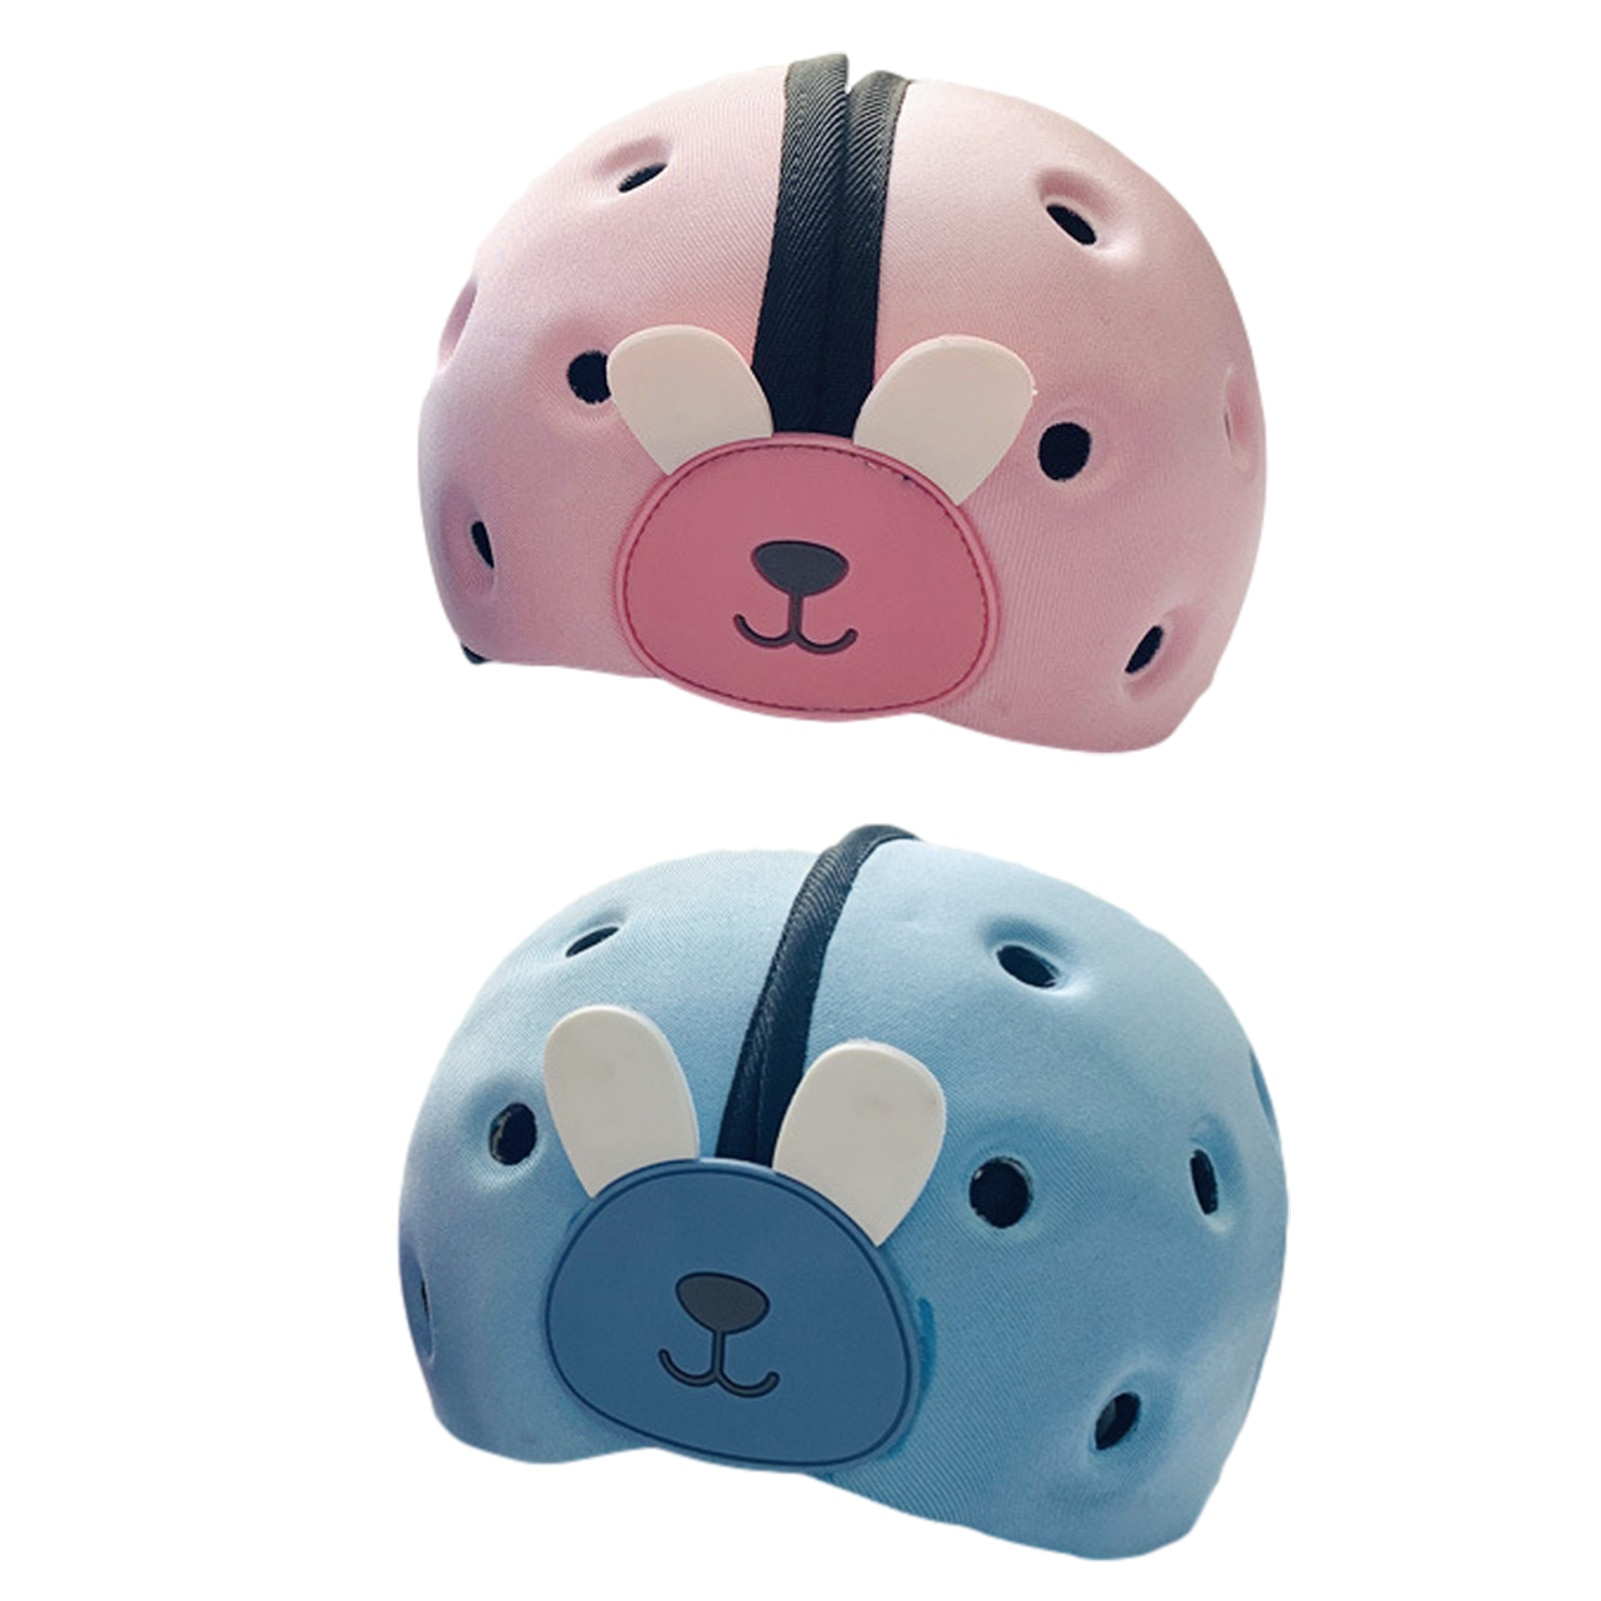 Baby Home Head Protection Helmet Baby Safety Ultra Light Helmet Children Learn To Walk Protector Hat For Toddler Kids